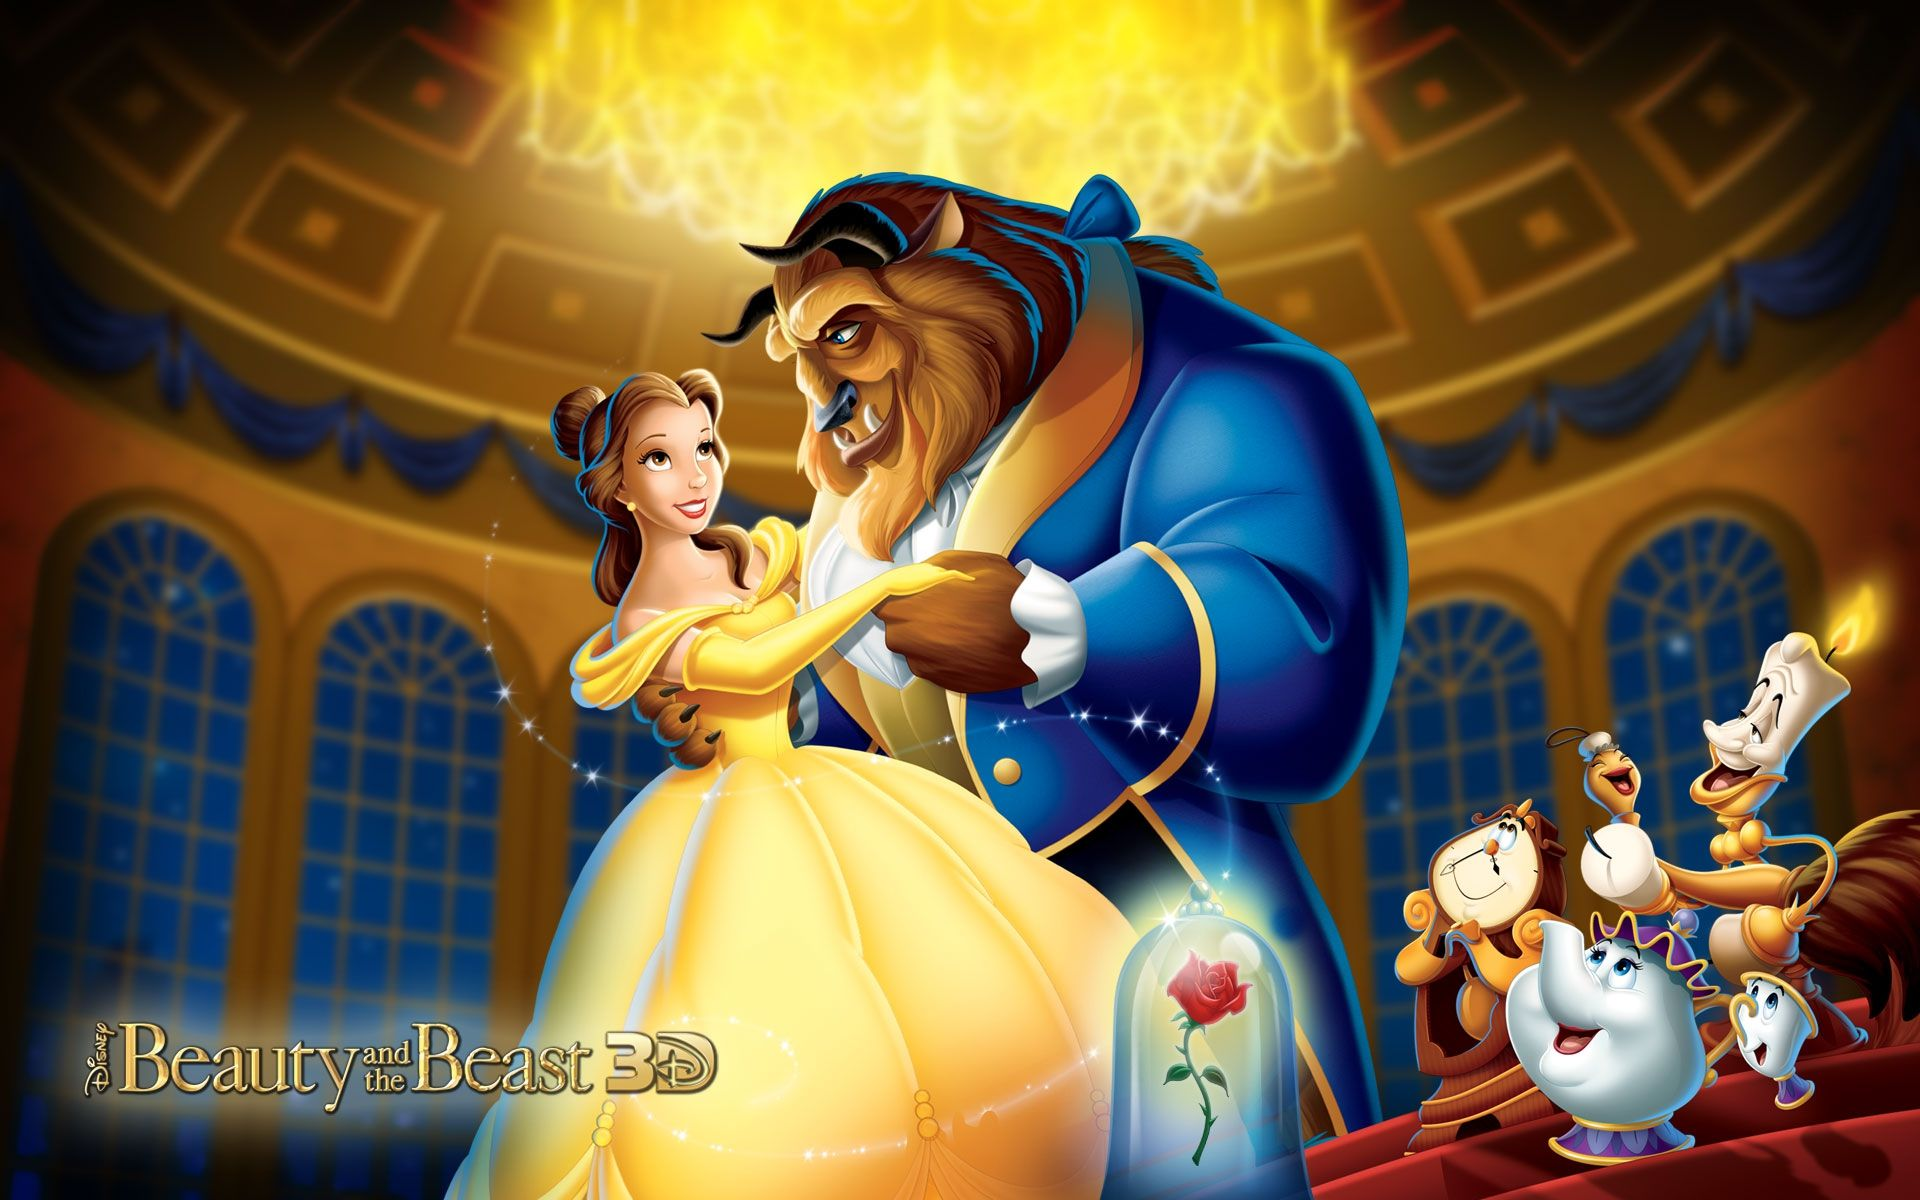 beauty and the beast hd images - free download latest beauty and the